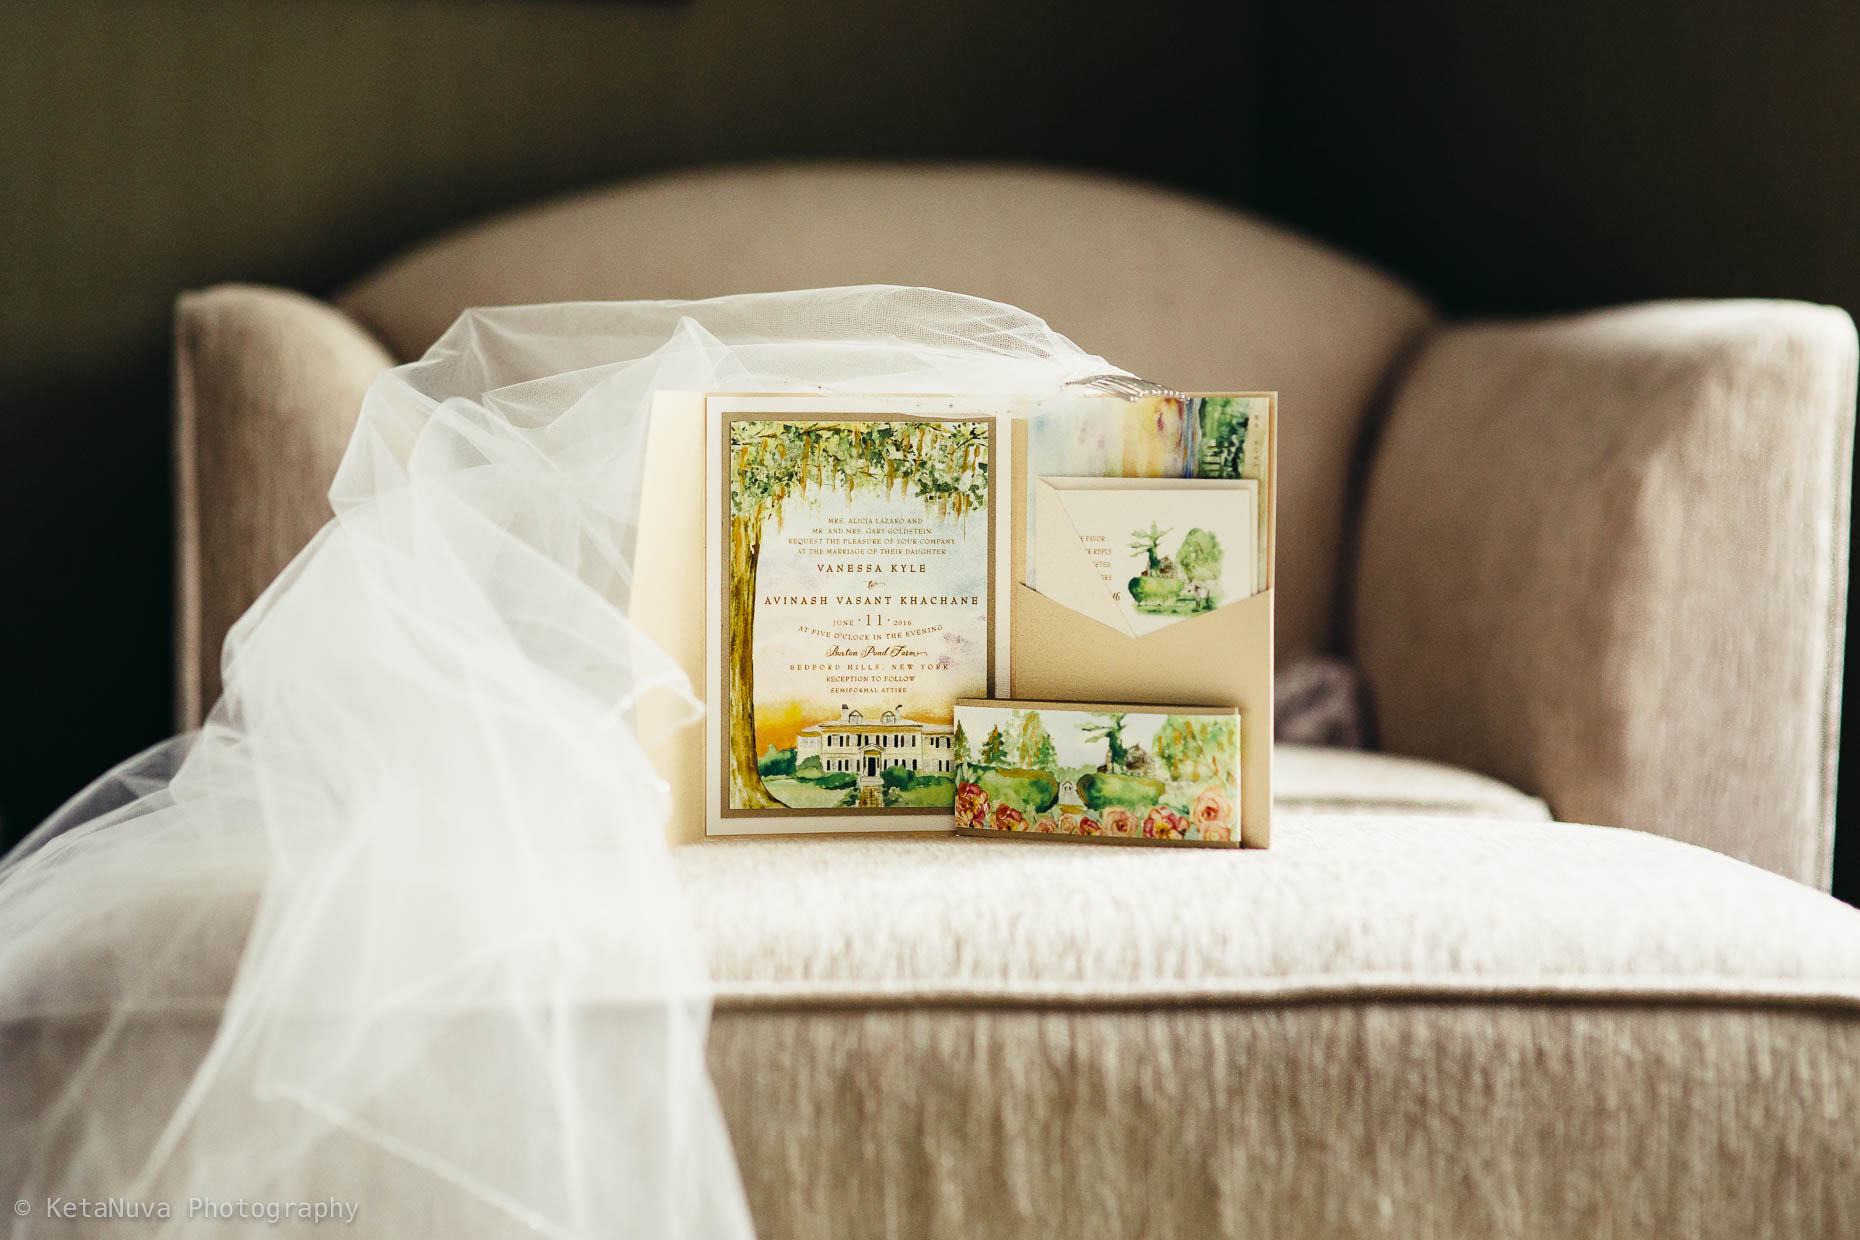 We absolutely loved this custom invitation card. Hudson valley wedding.